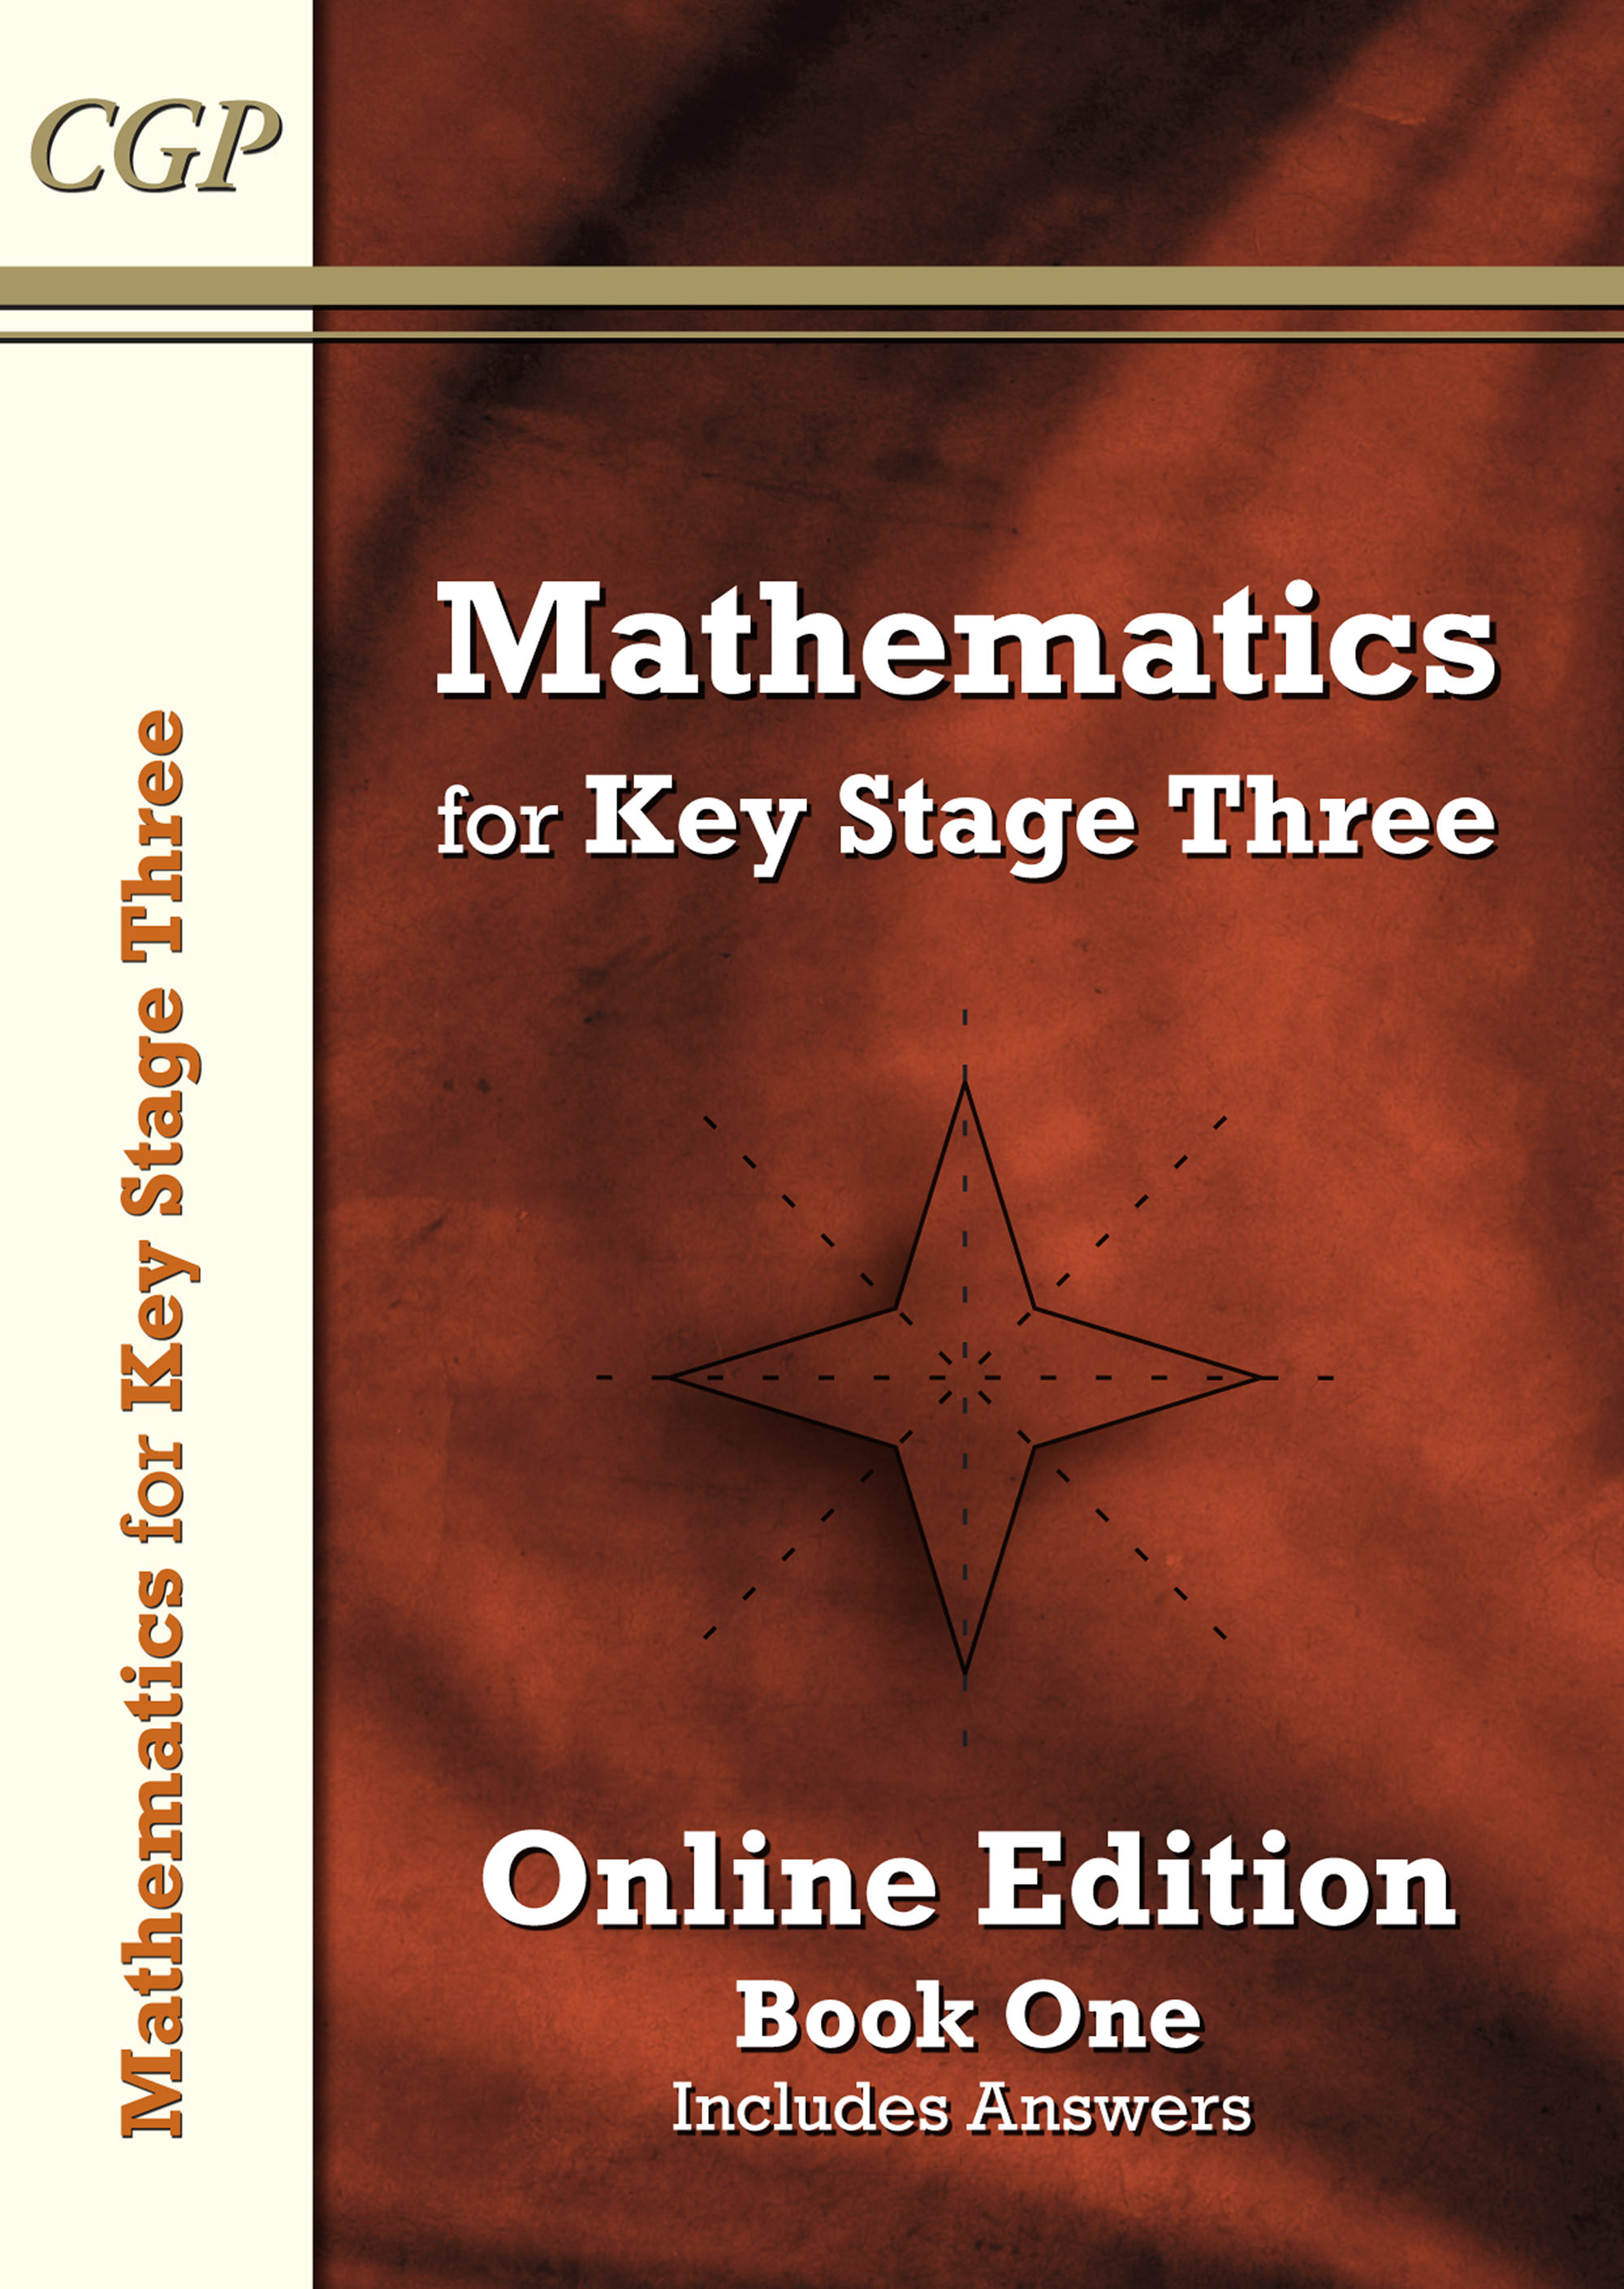 M1N31G - KS3 Maths Textbook 1: Student Online Edition (with answers)